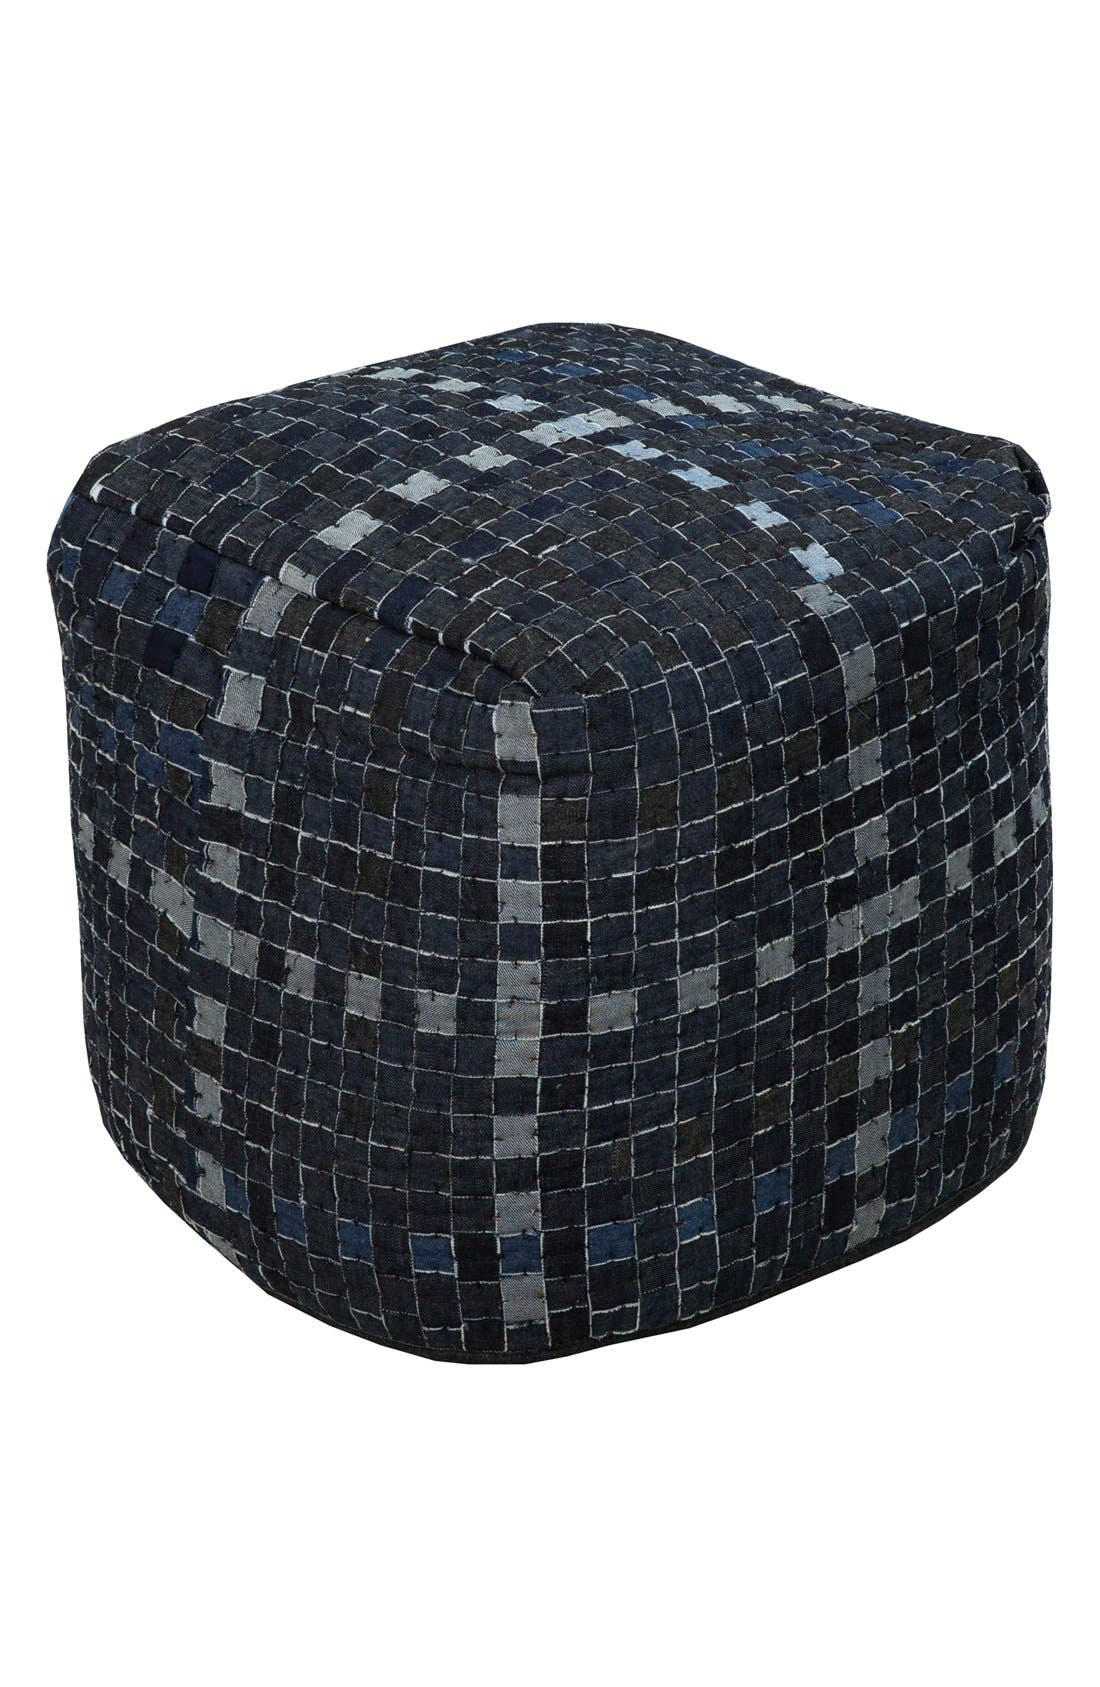 Denim Pouf,                         Main,                         color,